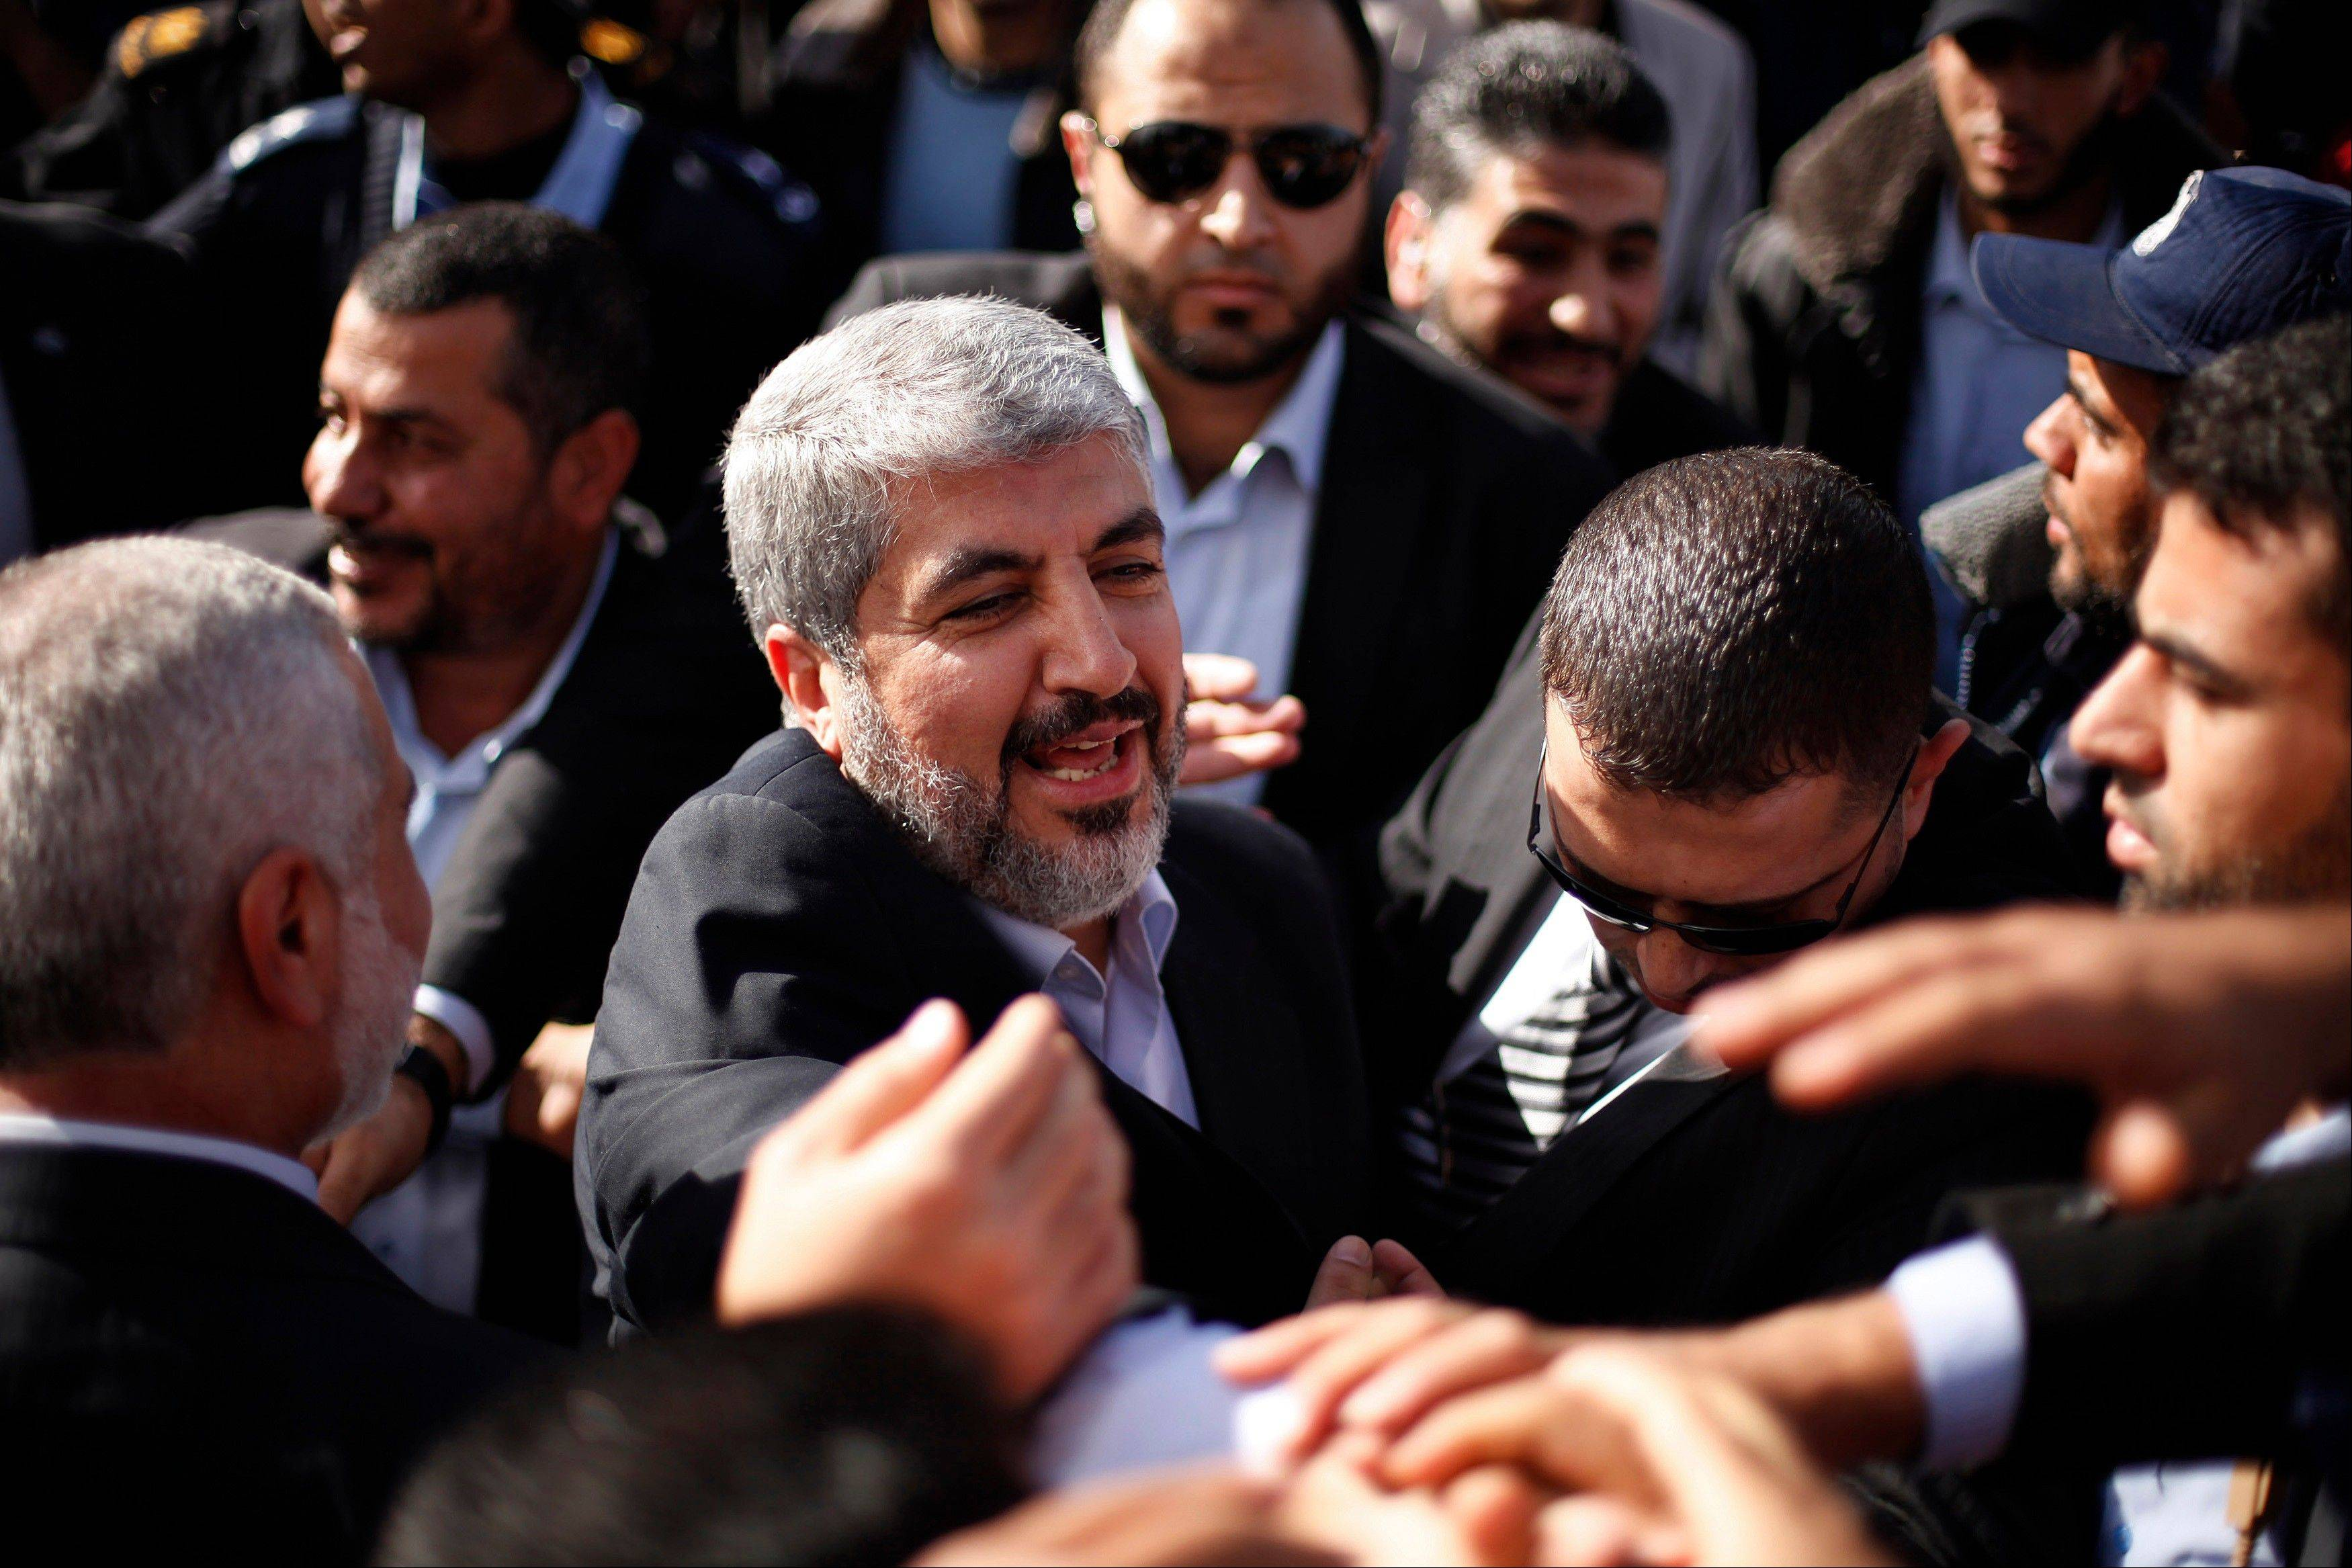 The exiled Hamas chief Khaled Mashaal shakes hands with supporters upon his arrival at Rafah crossing in the southern Gaza Strip, Friday, Dec. 7, 2012. Mashaal broke into tears Friday as he arrived in the Gaza Strip for his first-ever visit, a landmark trip reflecting his militant group's growing international acceptance and its defiance of Israel.